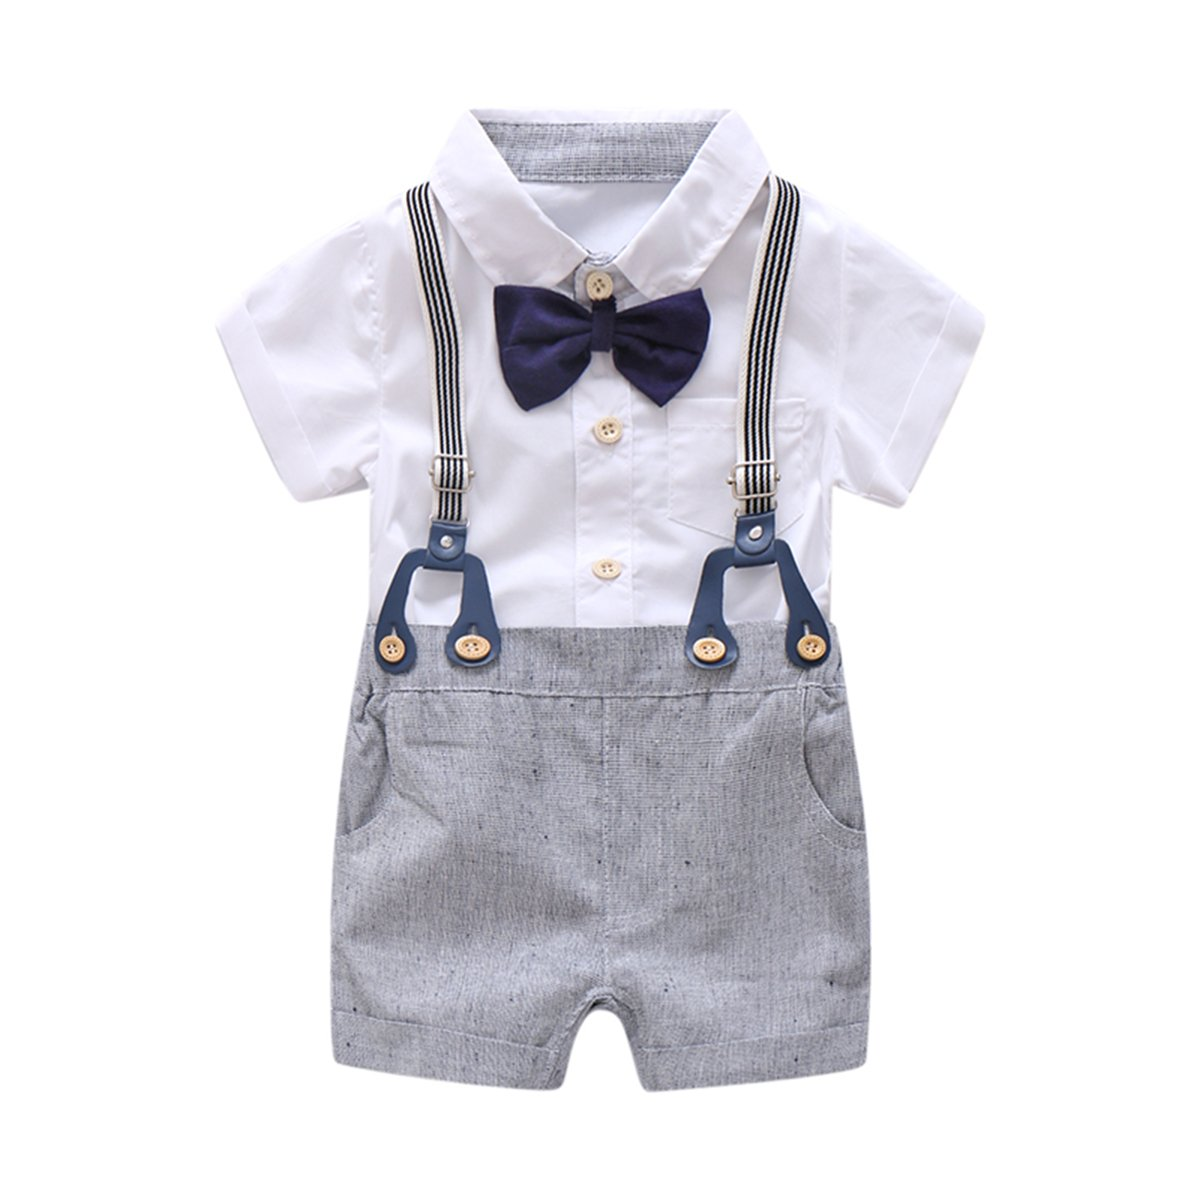 Boarnseorl Baby Boys Gentleman Outfits Suits, Infant Short Sleeve Shirt+Bib Pants+Bow Tie Overalls Clothes Set